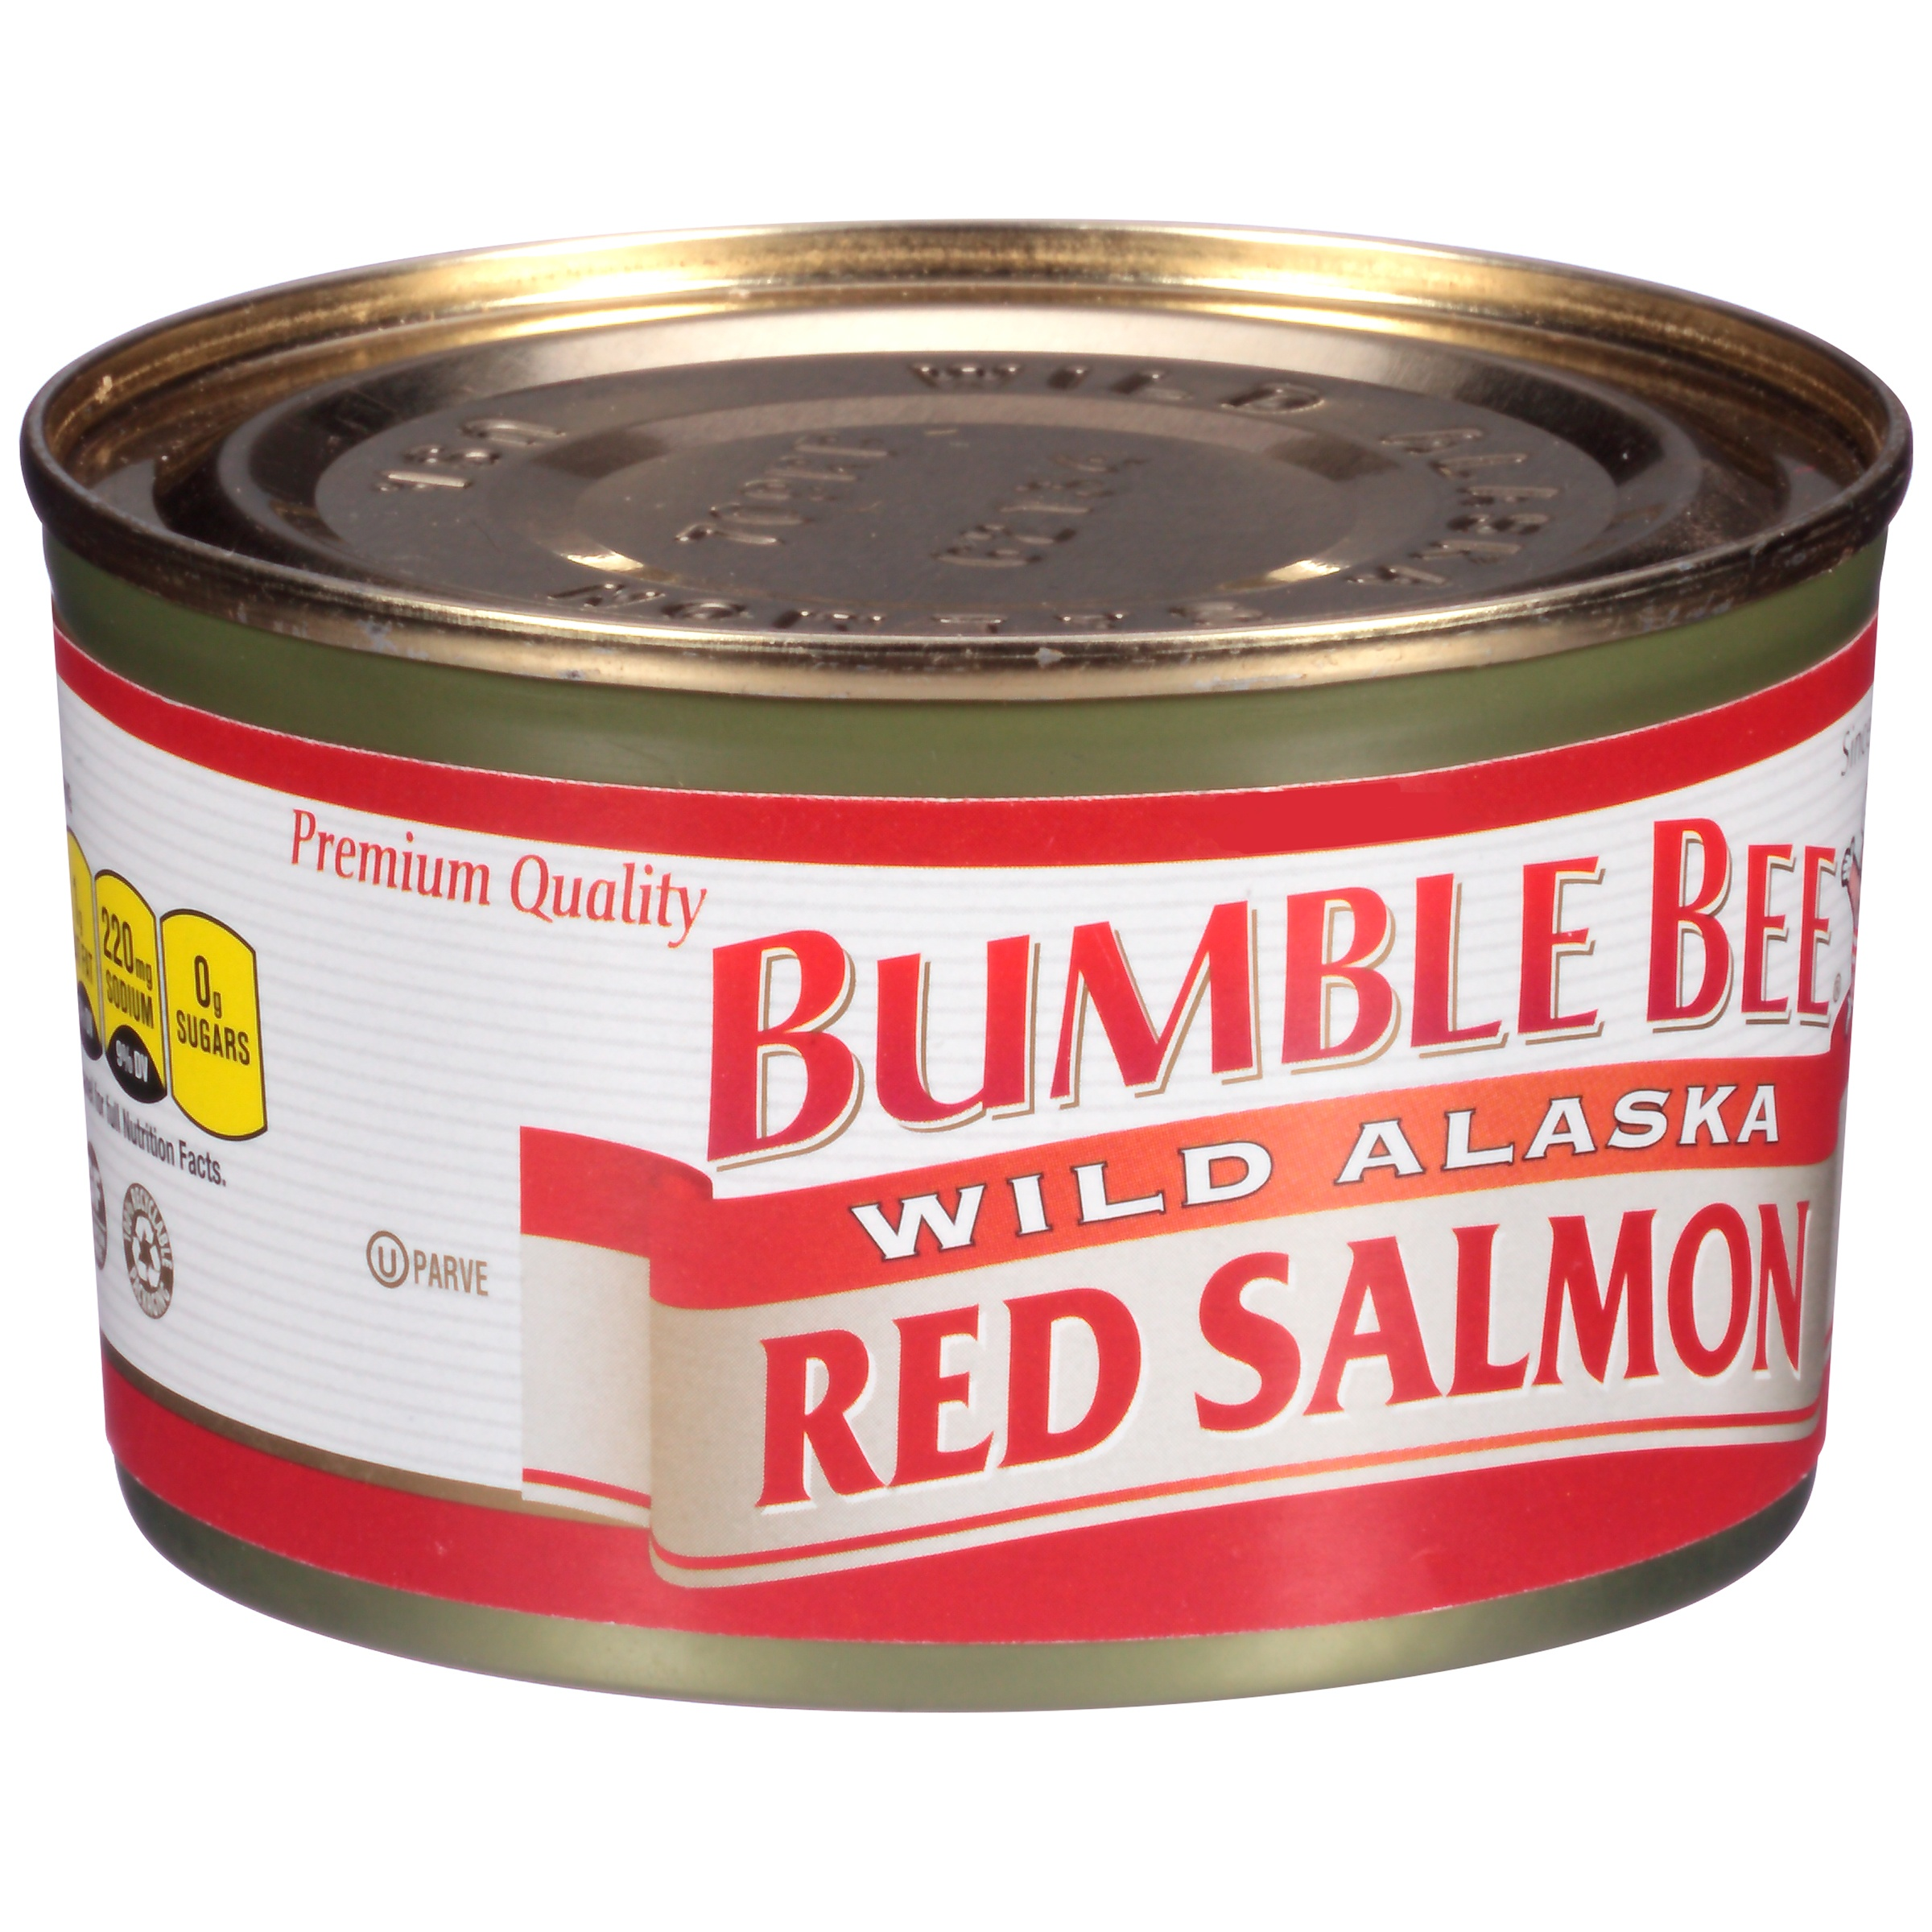 Bumble Bee Wild Alaskan Red Salmon, 7.5oz can by Bumble Bee Foods